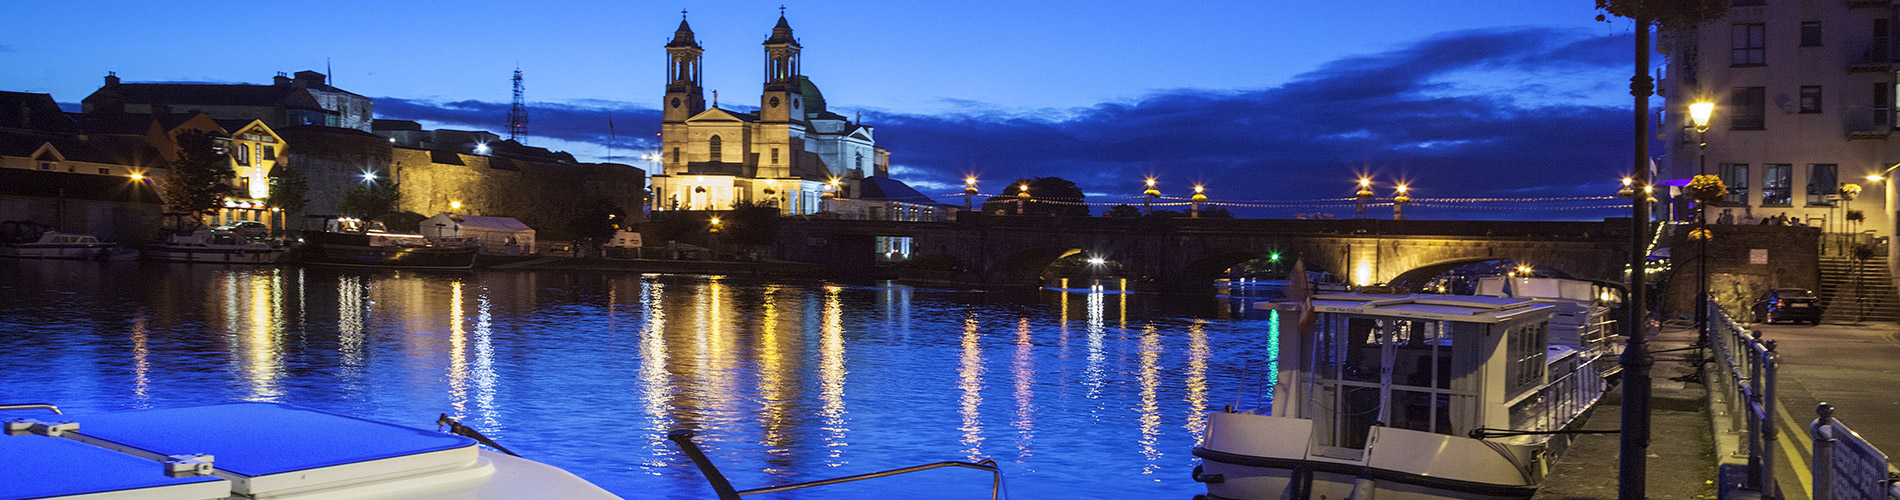 Places to stay in Athlone Town